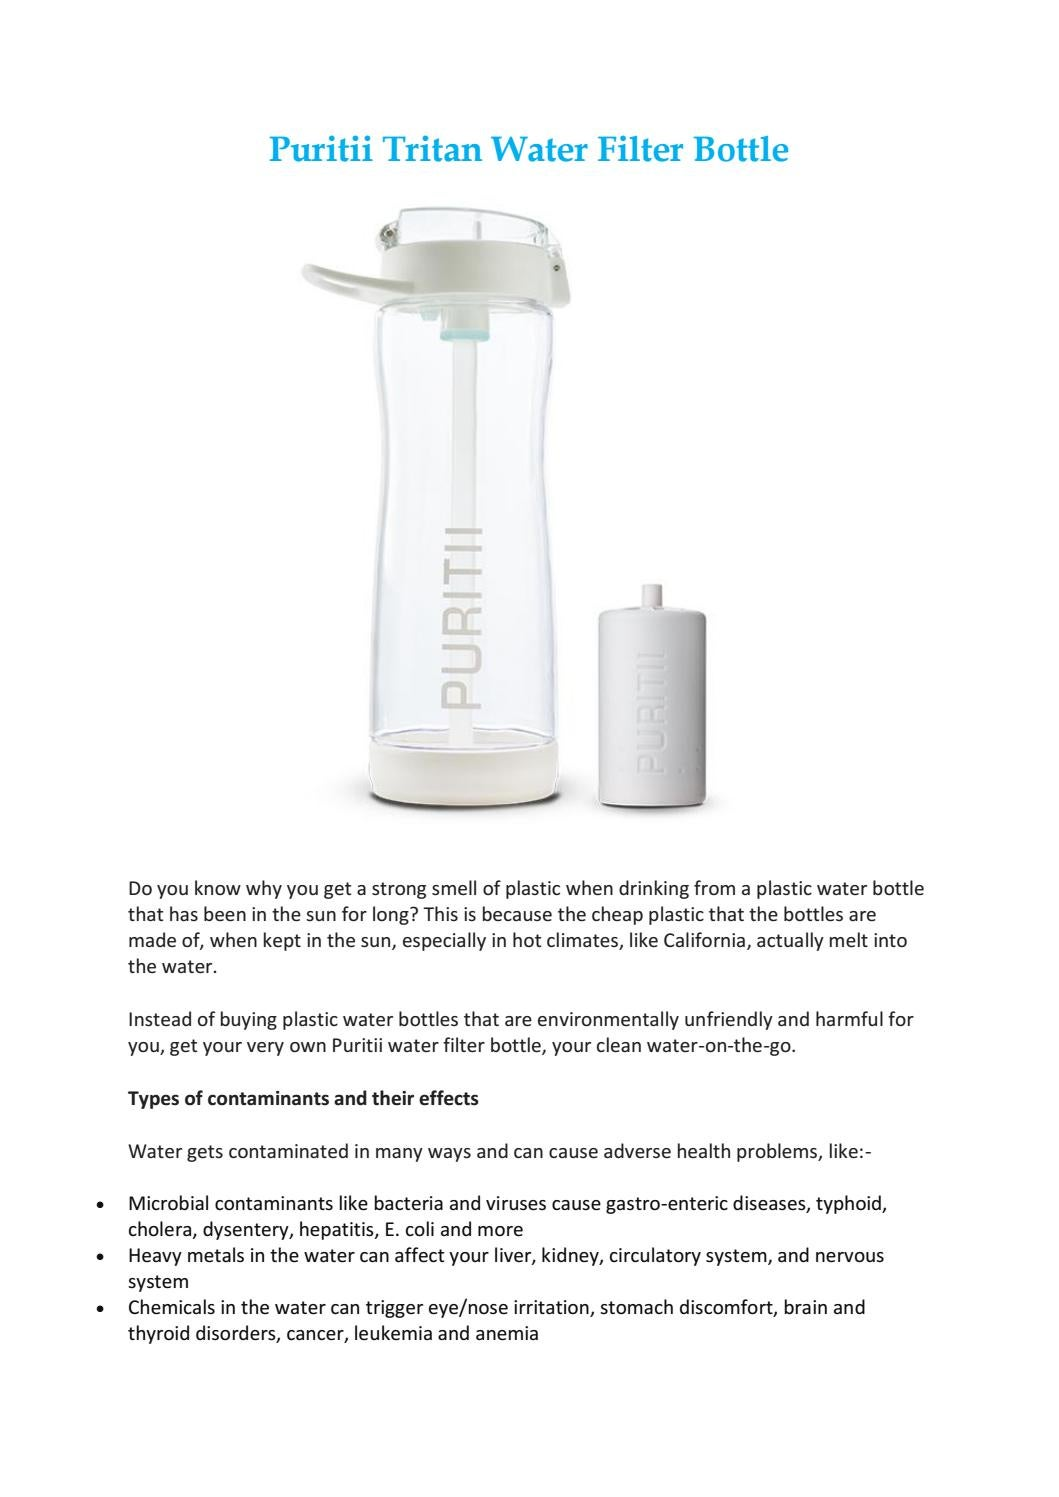 4bf8e0ac13 Puritii tritan water filter bottle by Env2 Inc - issuu